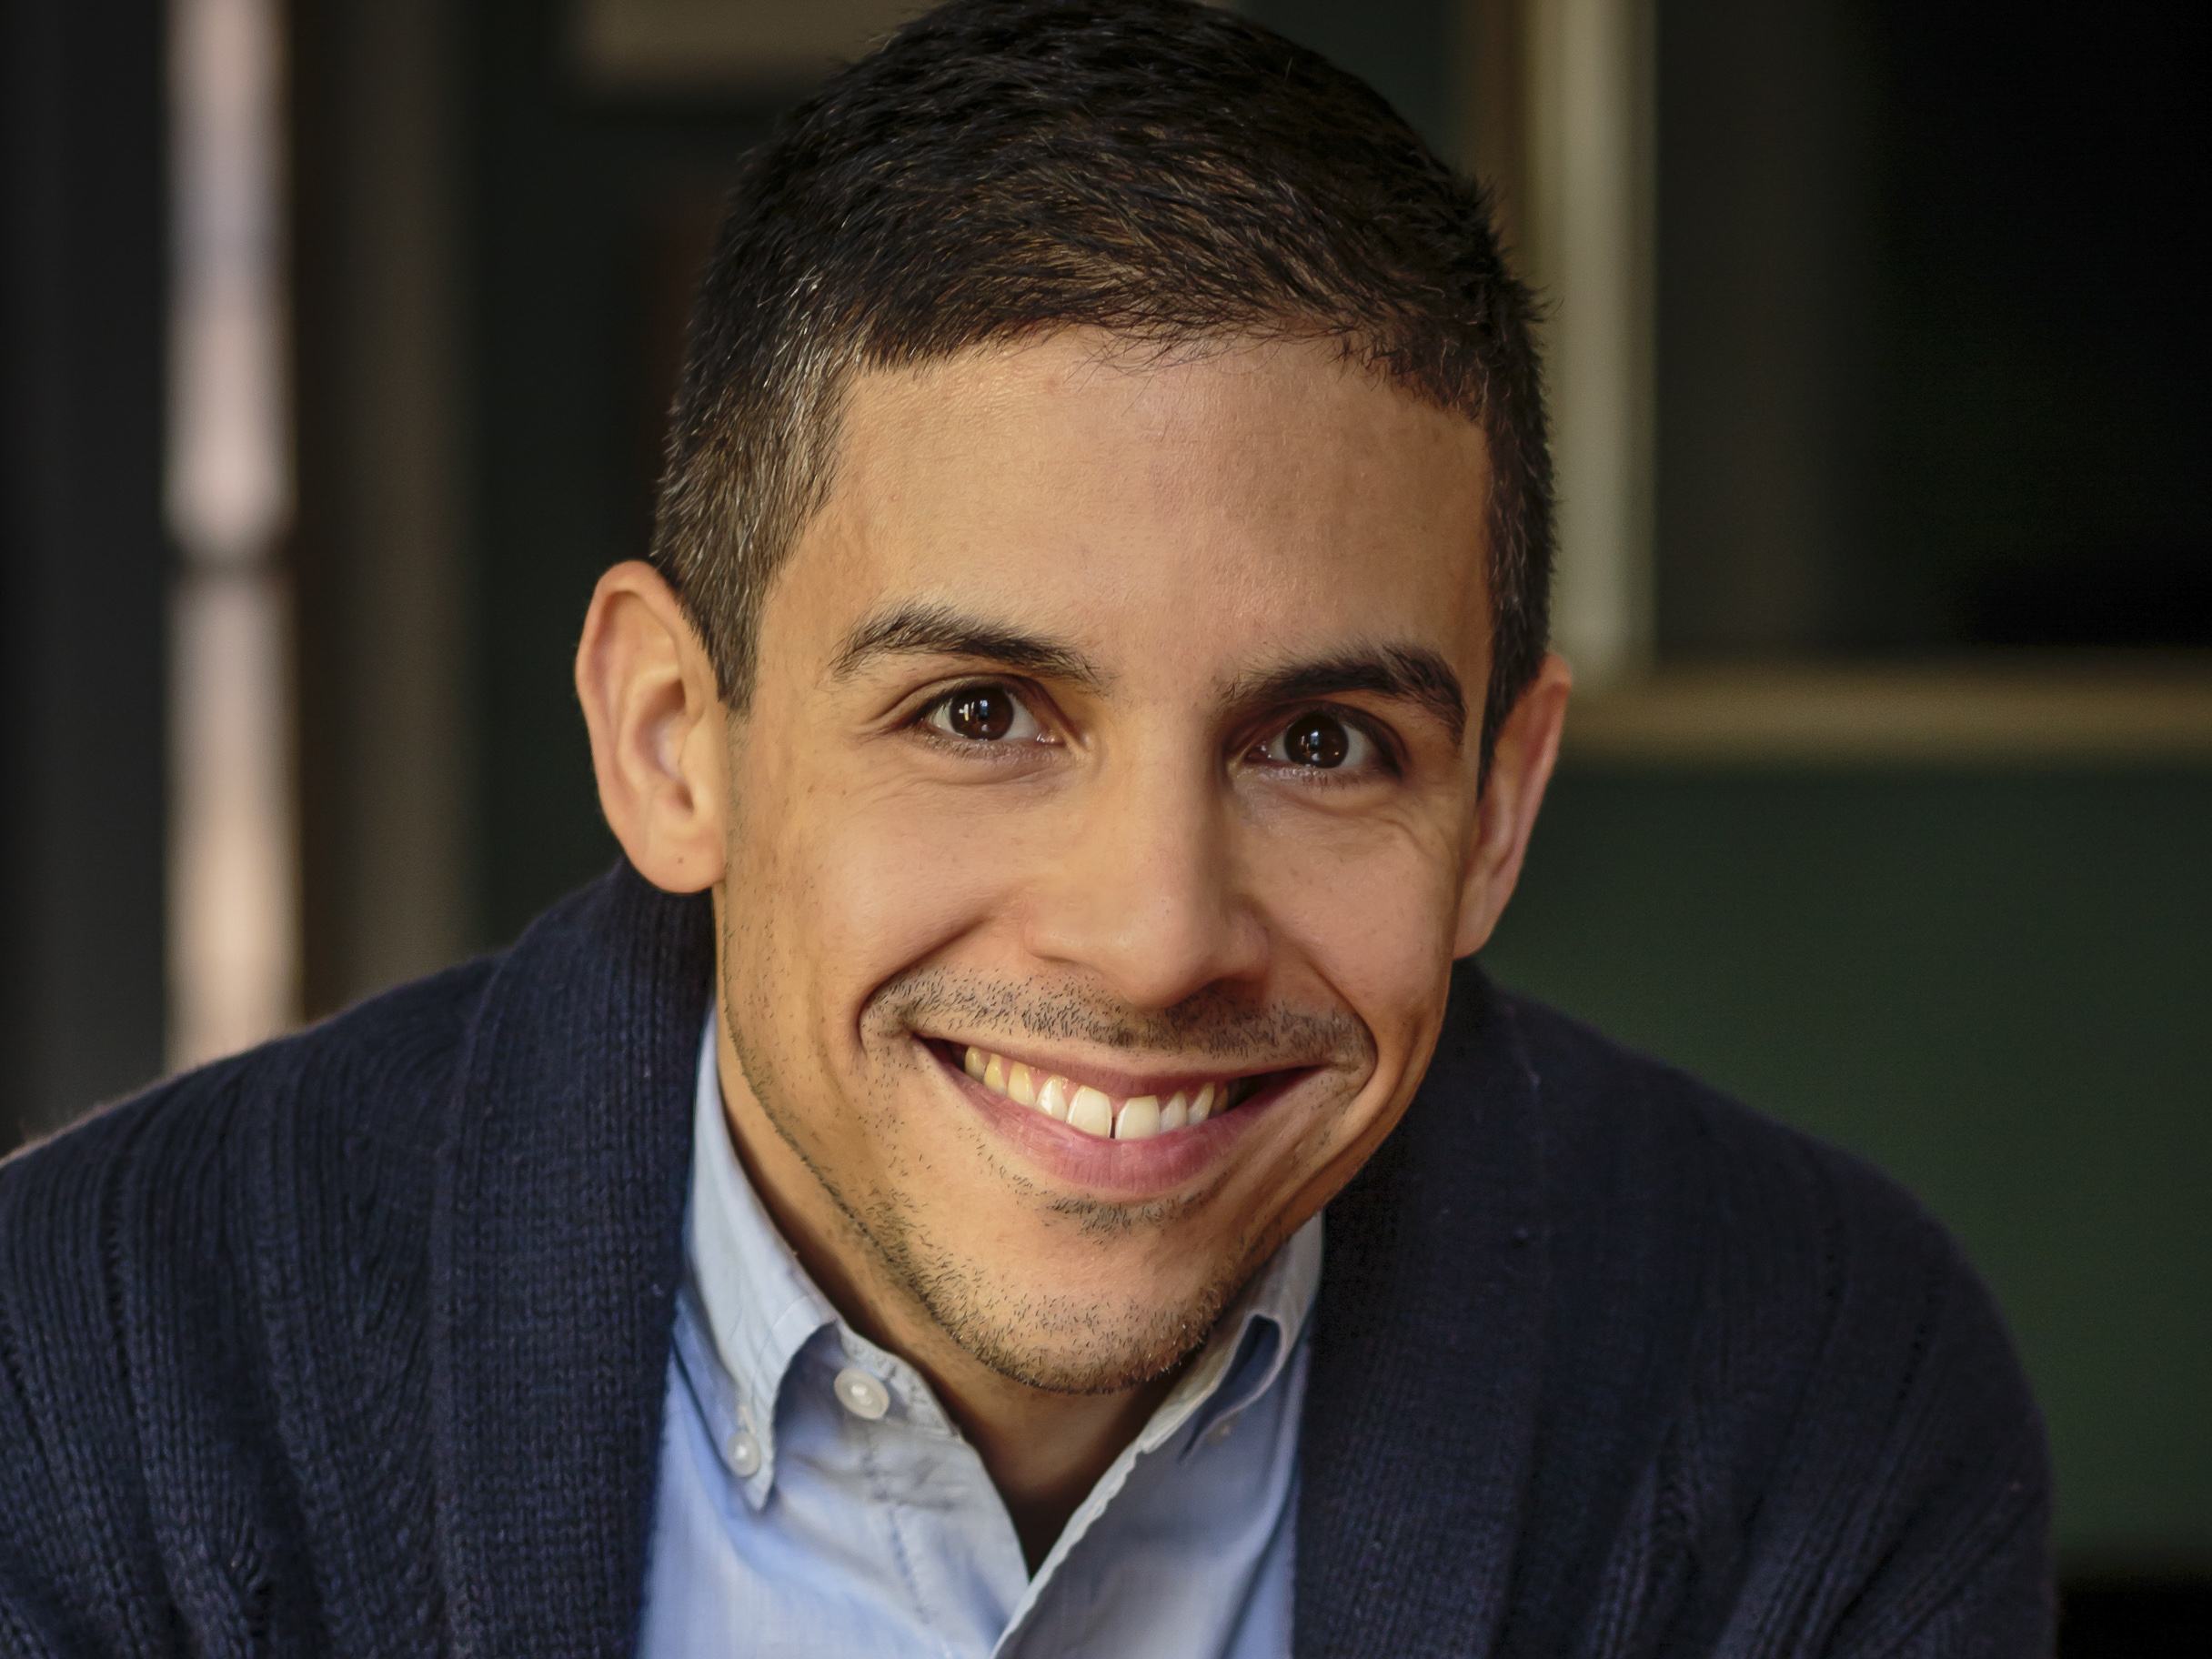 <p>Denver Center for the Performing Arts 2014-2015 Playwriting Fellow, Matthew Lopez.</p>